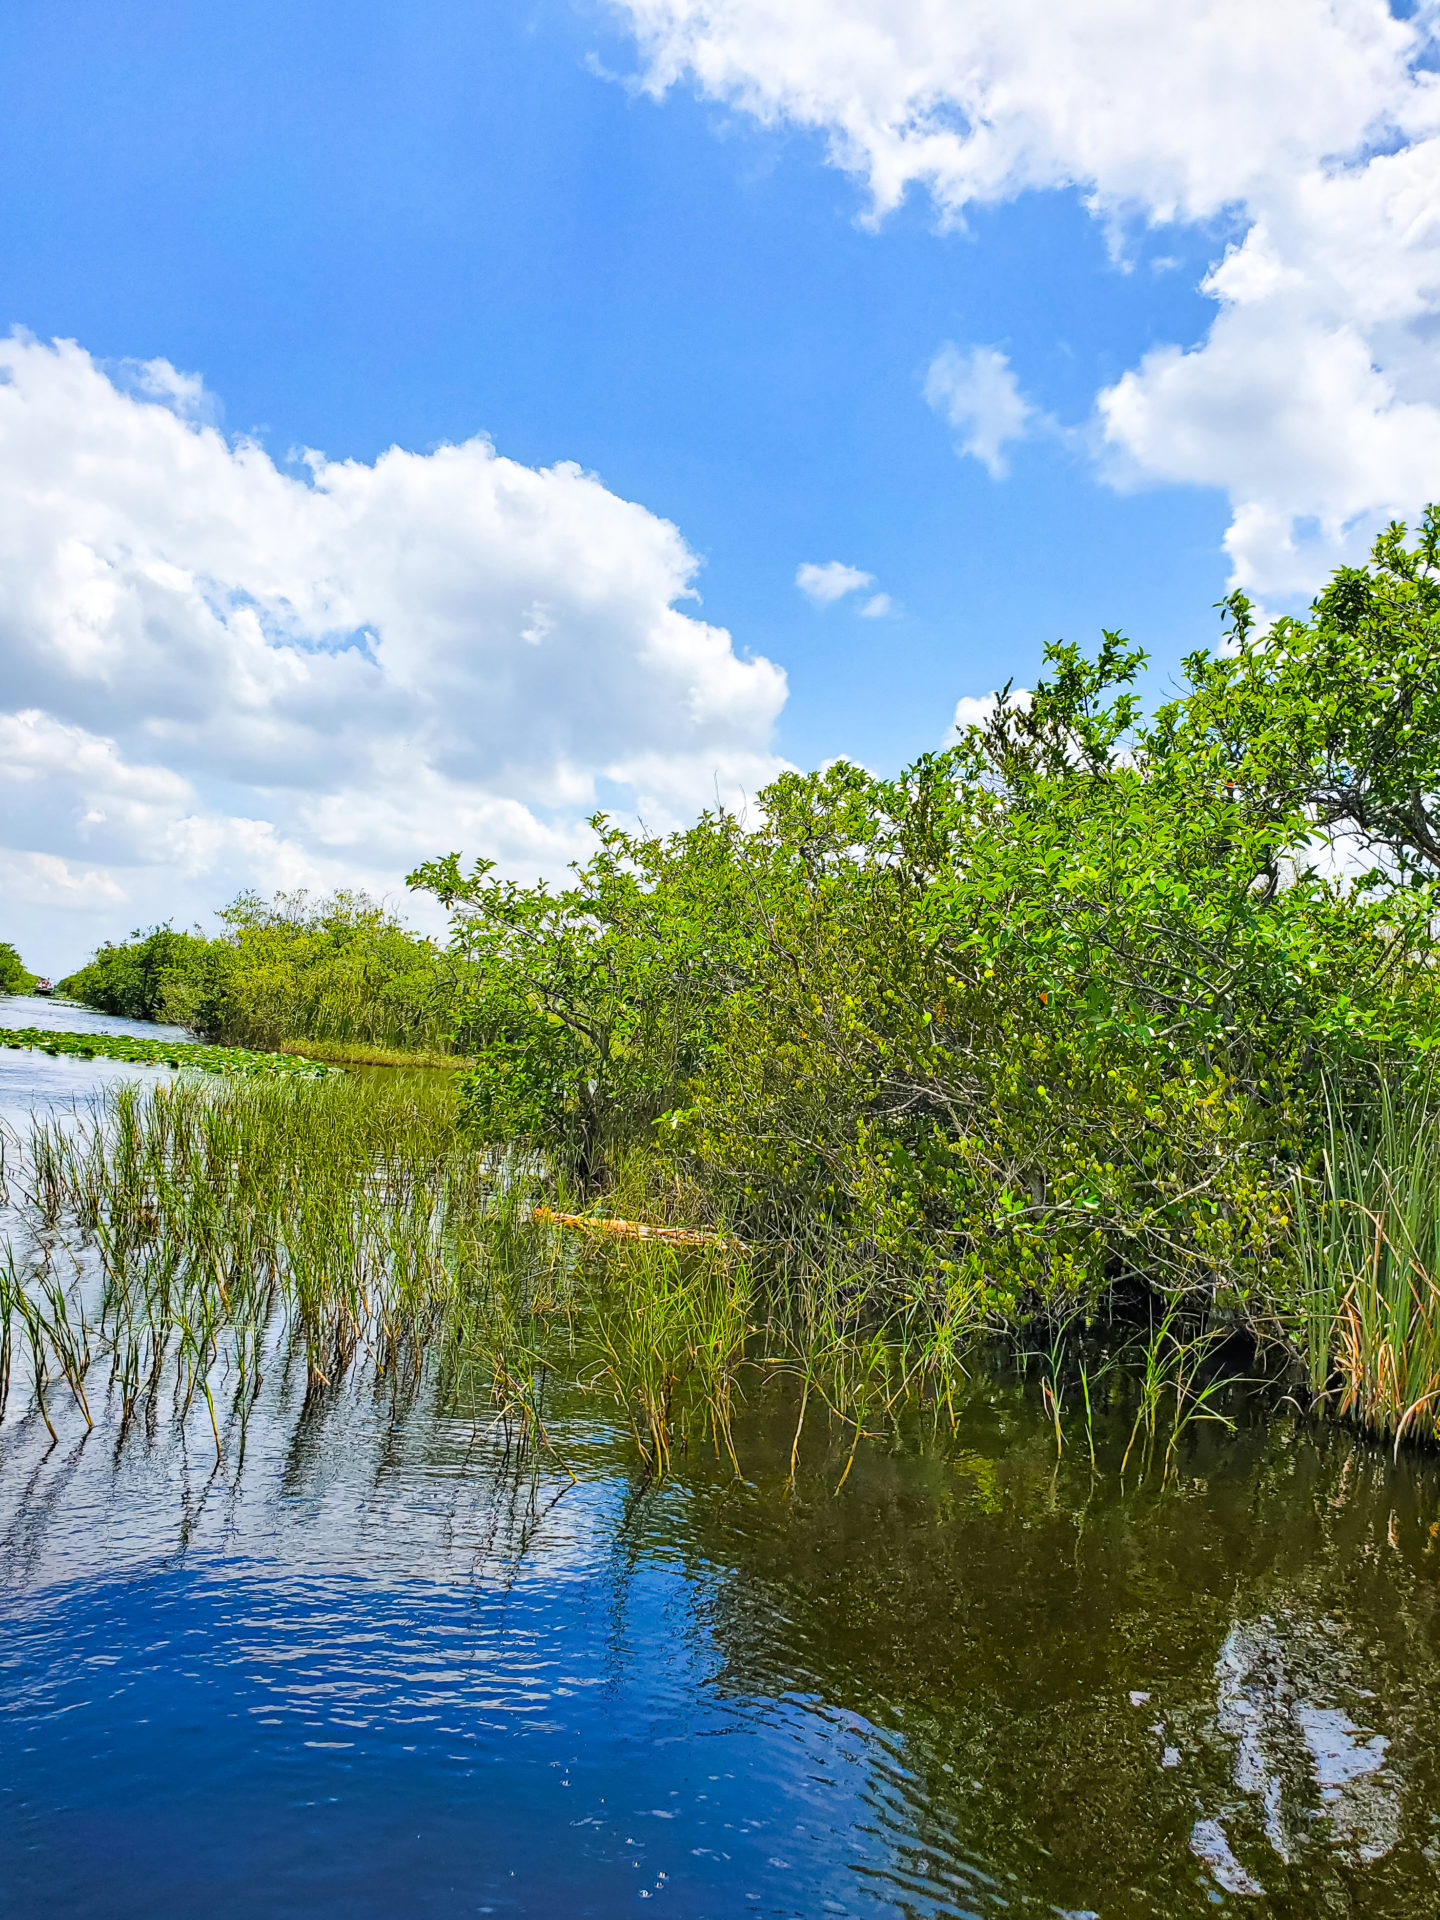 Water and green bushes in the everglades